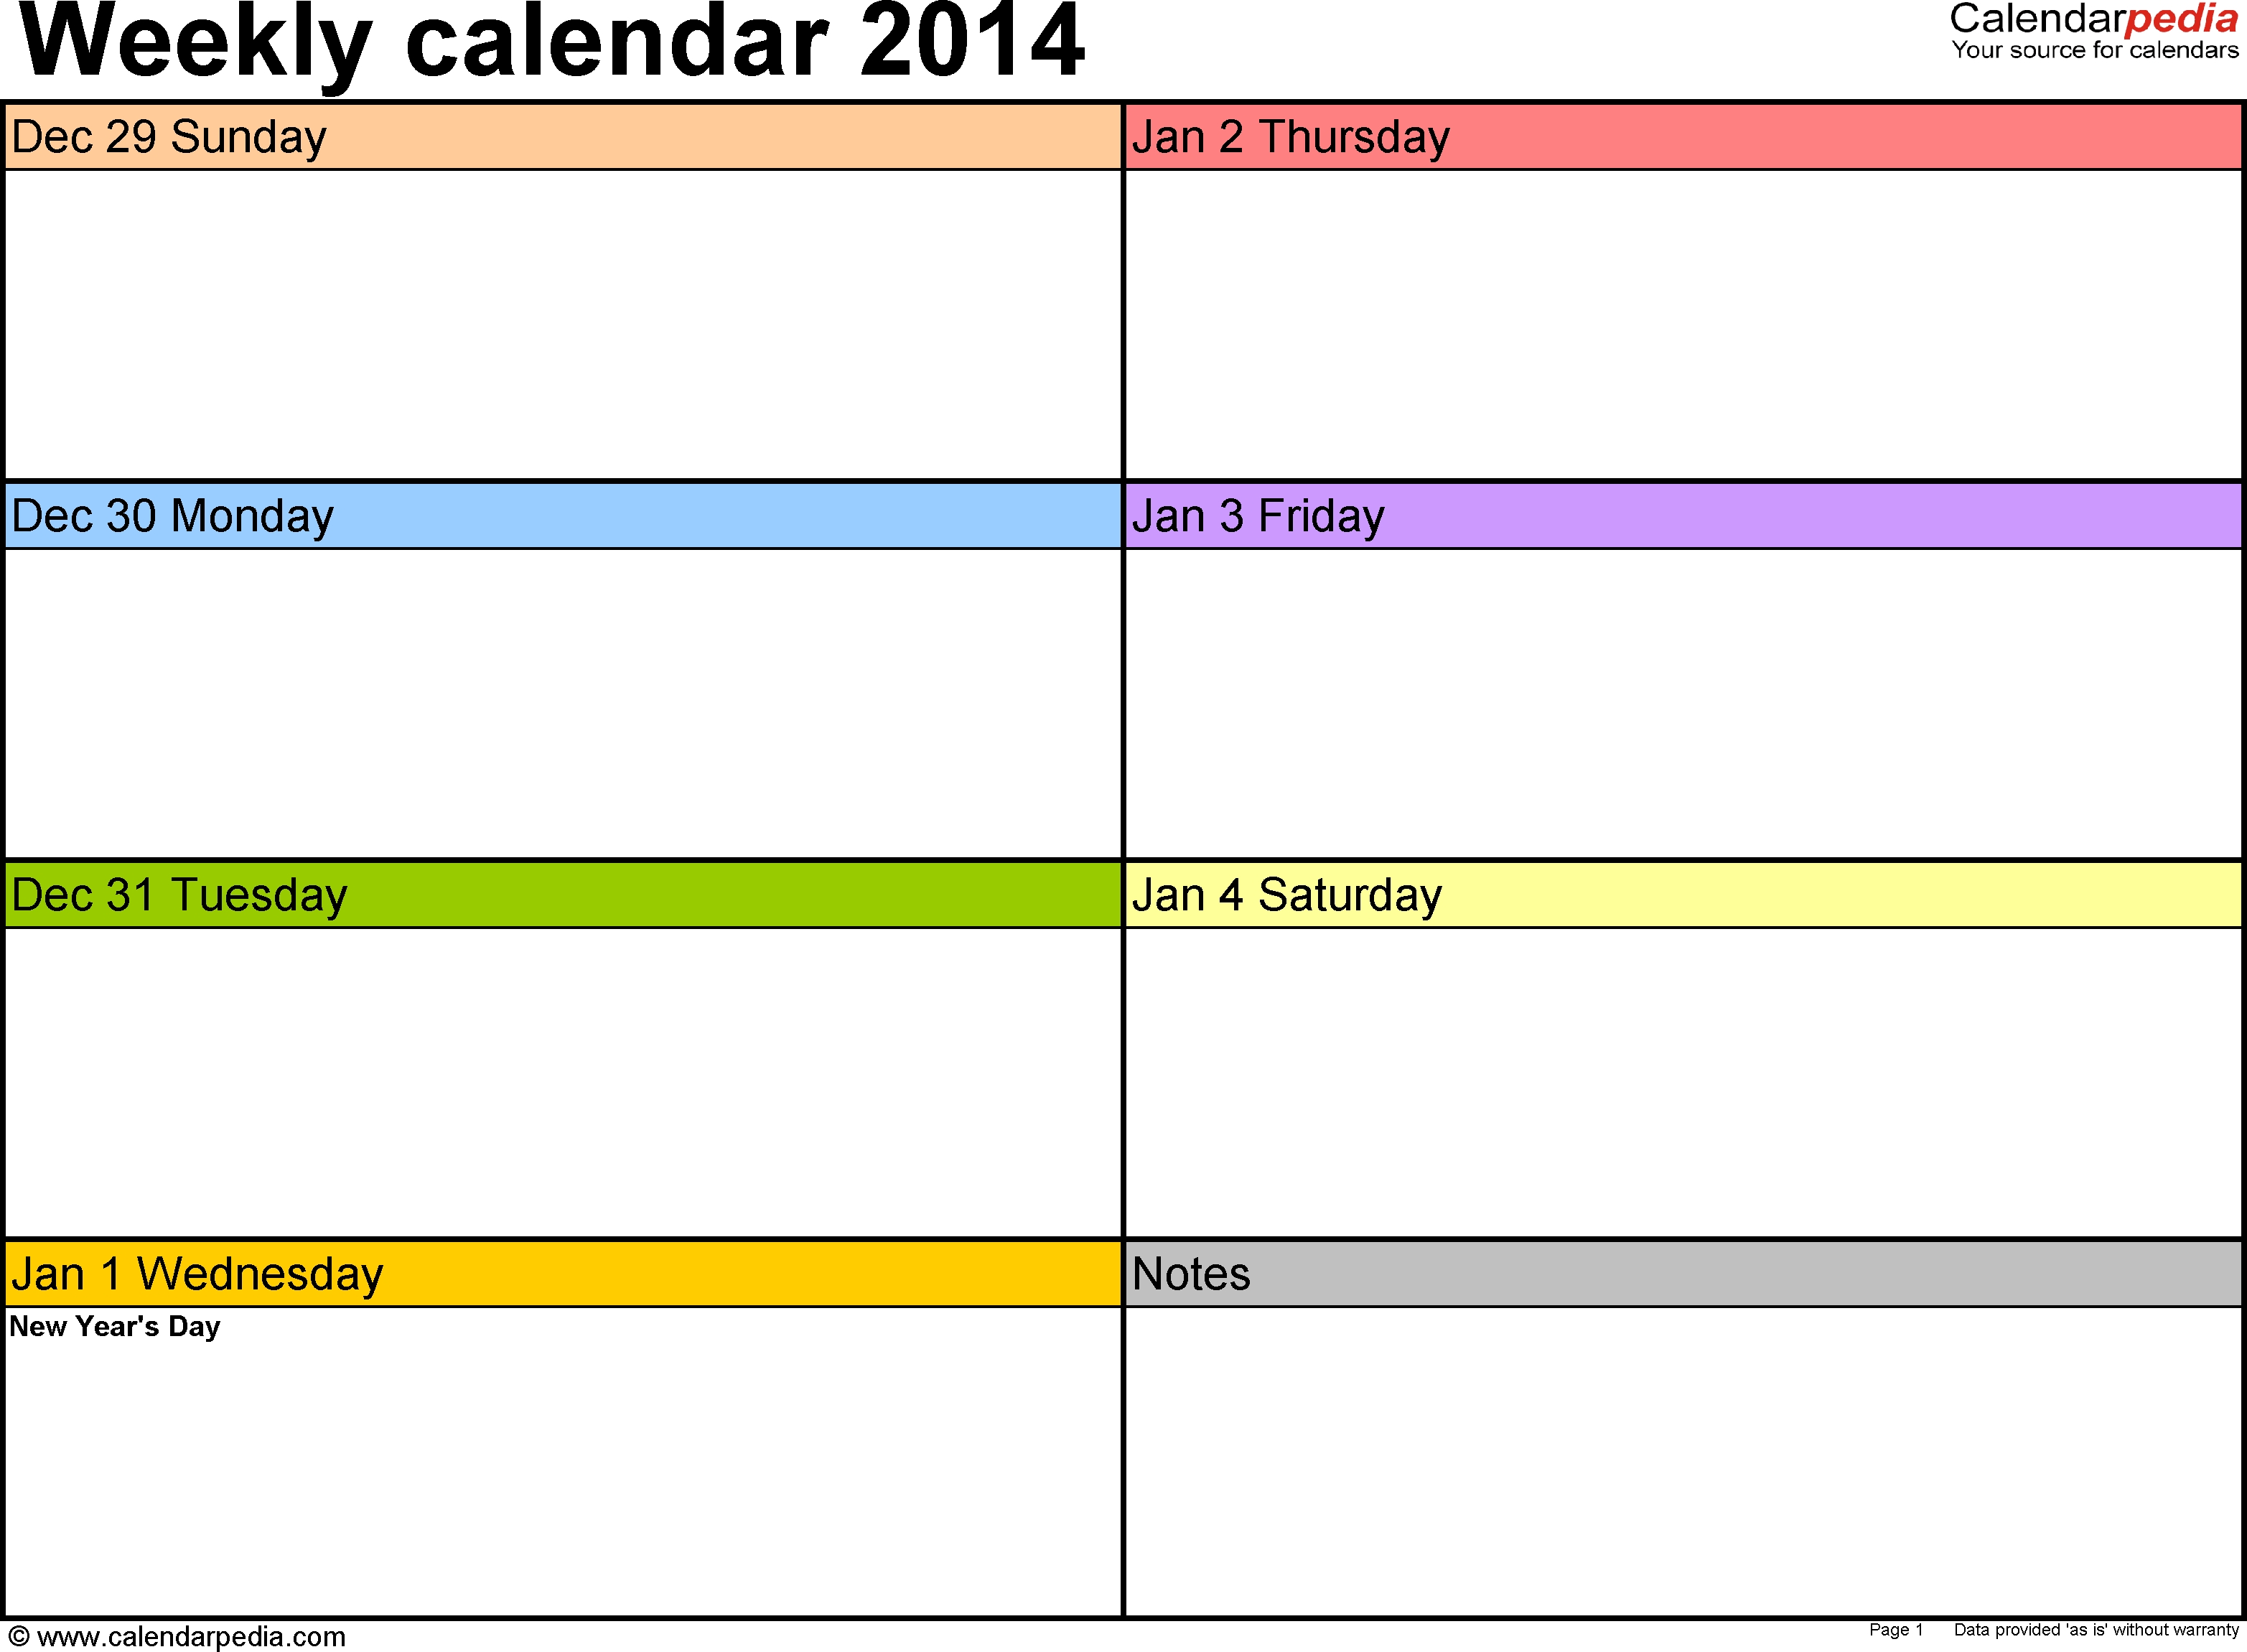 Weekly Calendar 2014 For Pdf - 4 Free Printable Templates intended for Printable Weekly Planner For The Week